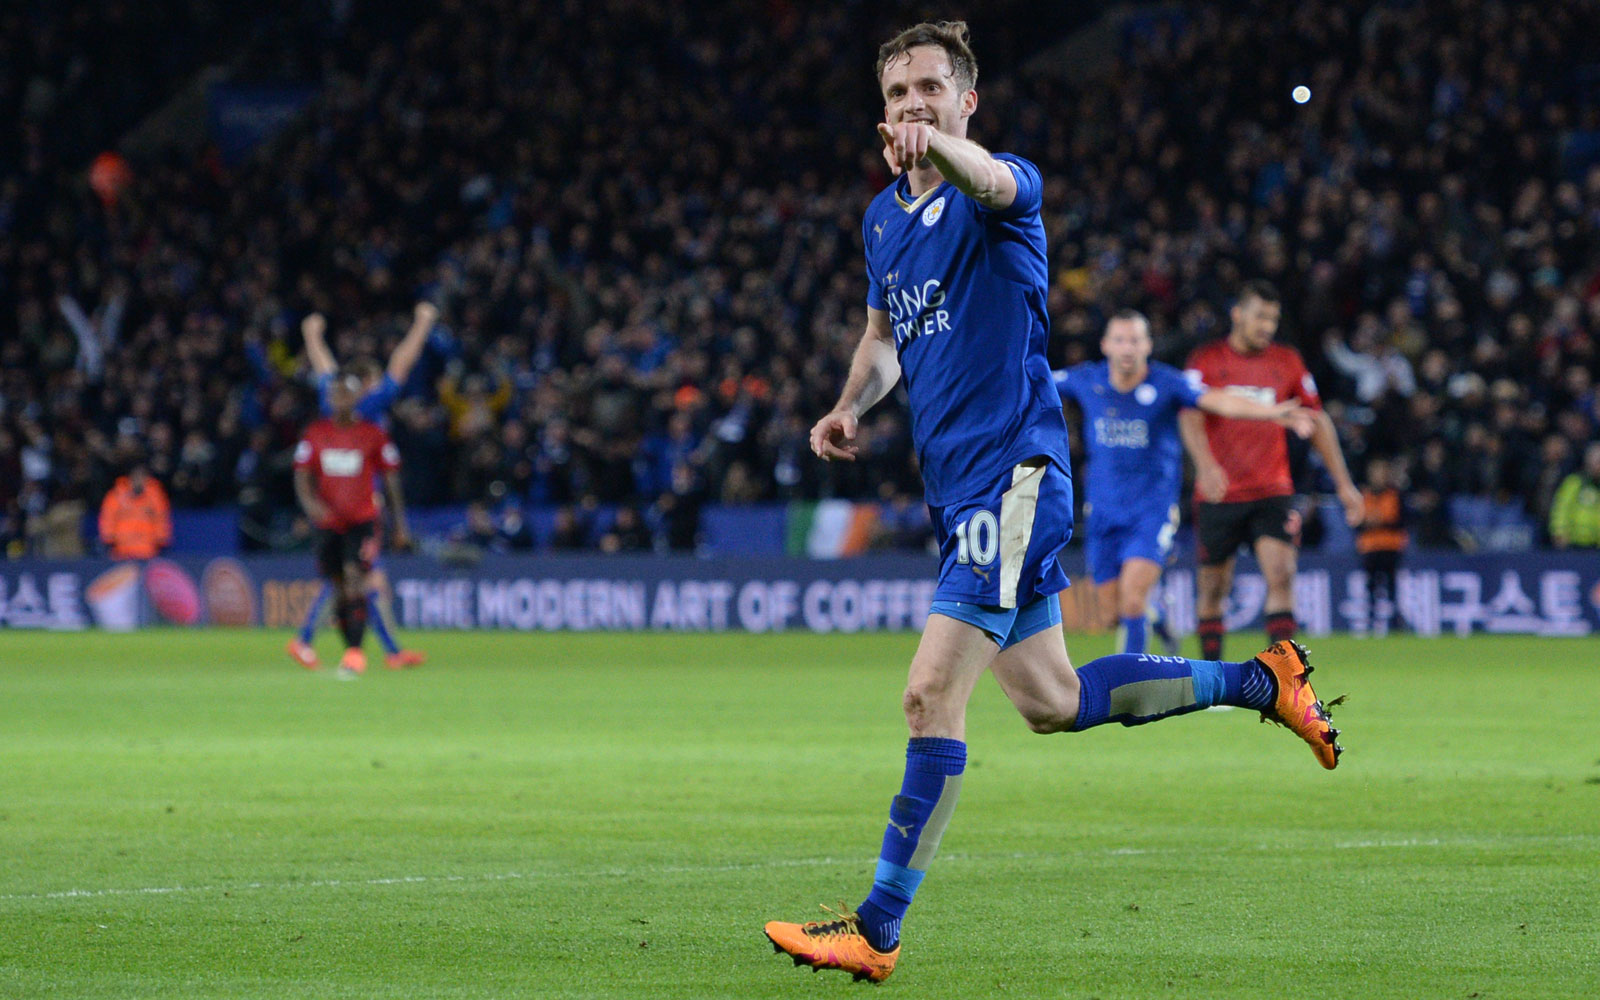 Not that it was ever remotely in doubt, but Leicester ensured safety from relegation with a 2-2 home draw vs. West Brom. Given Claudio Ranieri's cautious approach to overstating goals, the preseason expectations and last season's heroic charge out of the drop zone, the achievement was still notable and allowed Leicester to officially look ahead to bigger things.